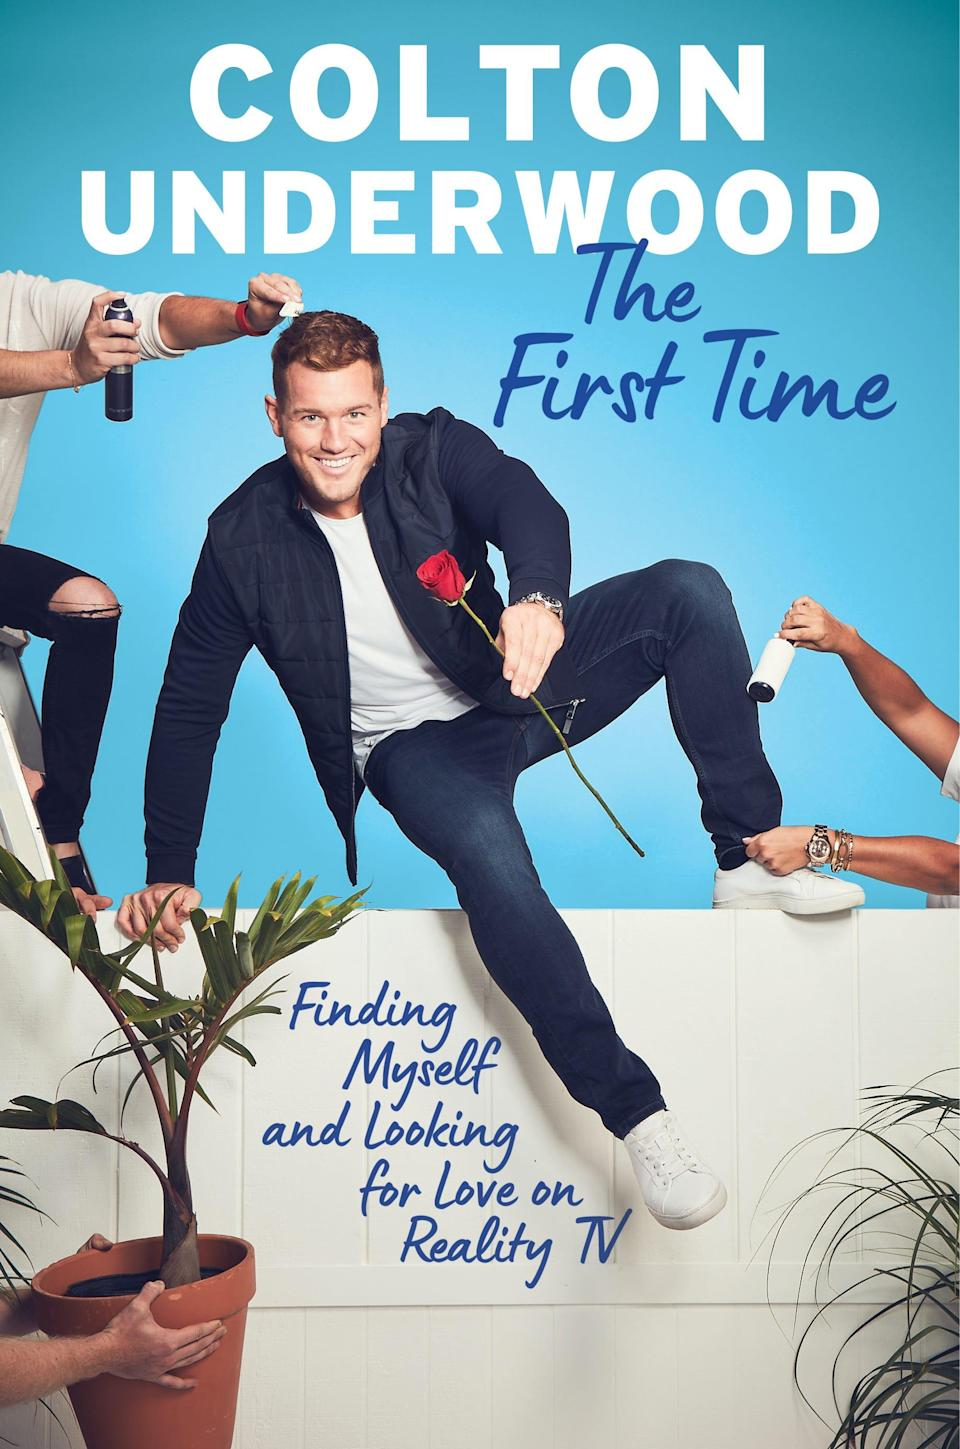 """Colton Underwood's memoir """"The First Time: Finding Myself and Looking for Love on Reality TV"""" hit bookshelves March 31, 2020."""